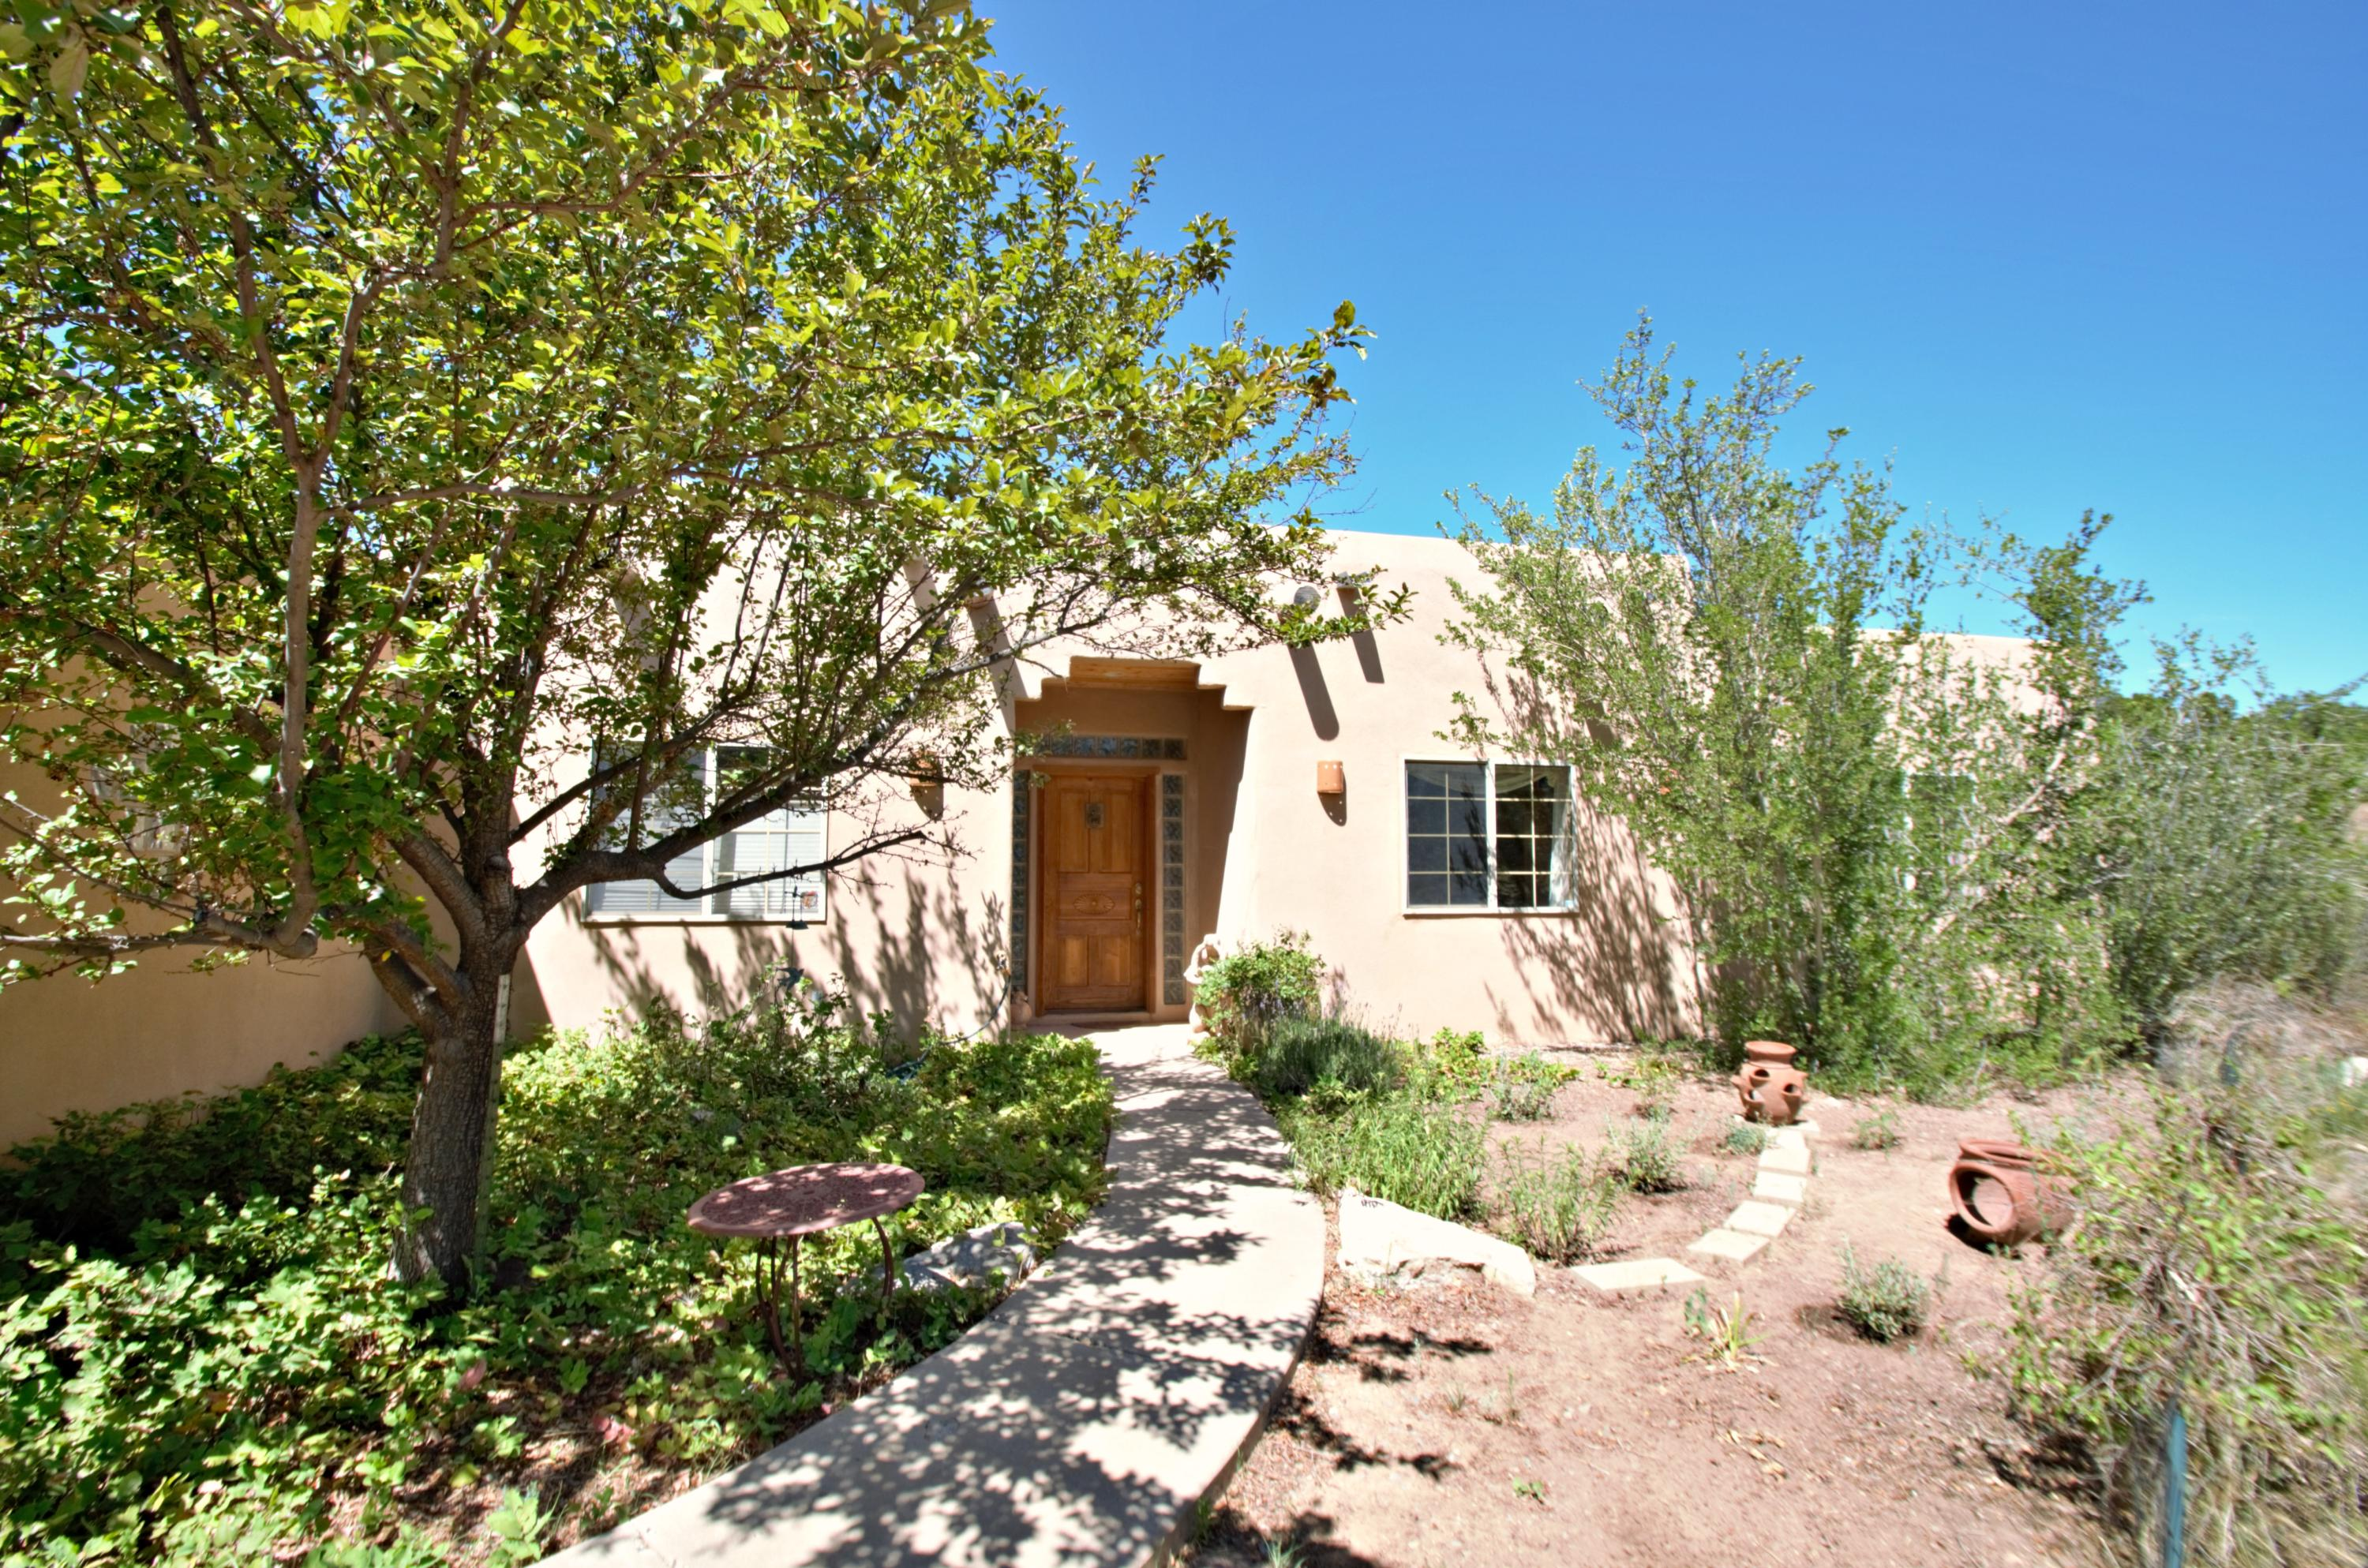 8 FULLERTON Road Property Photo - Edgewood, NM real estate listing